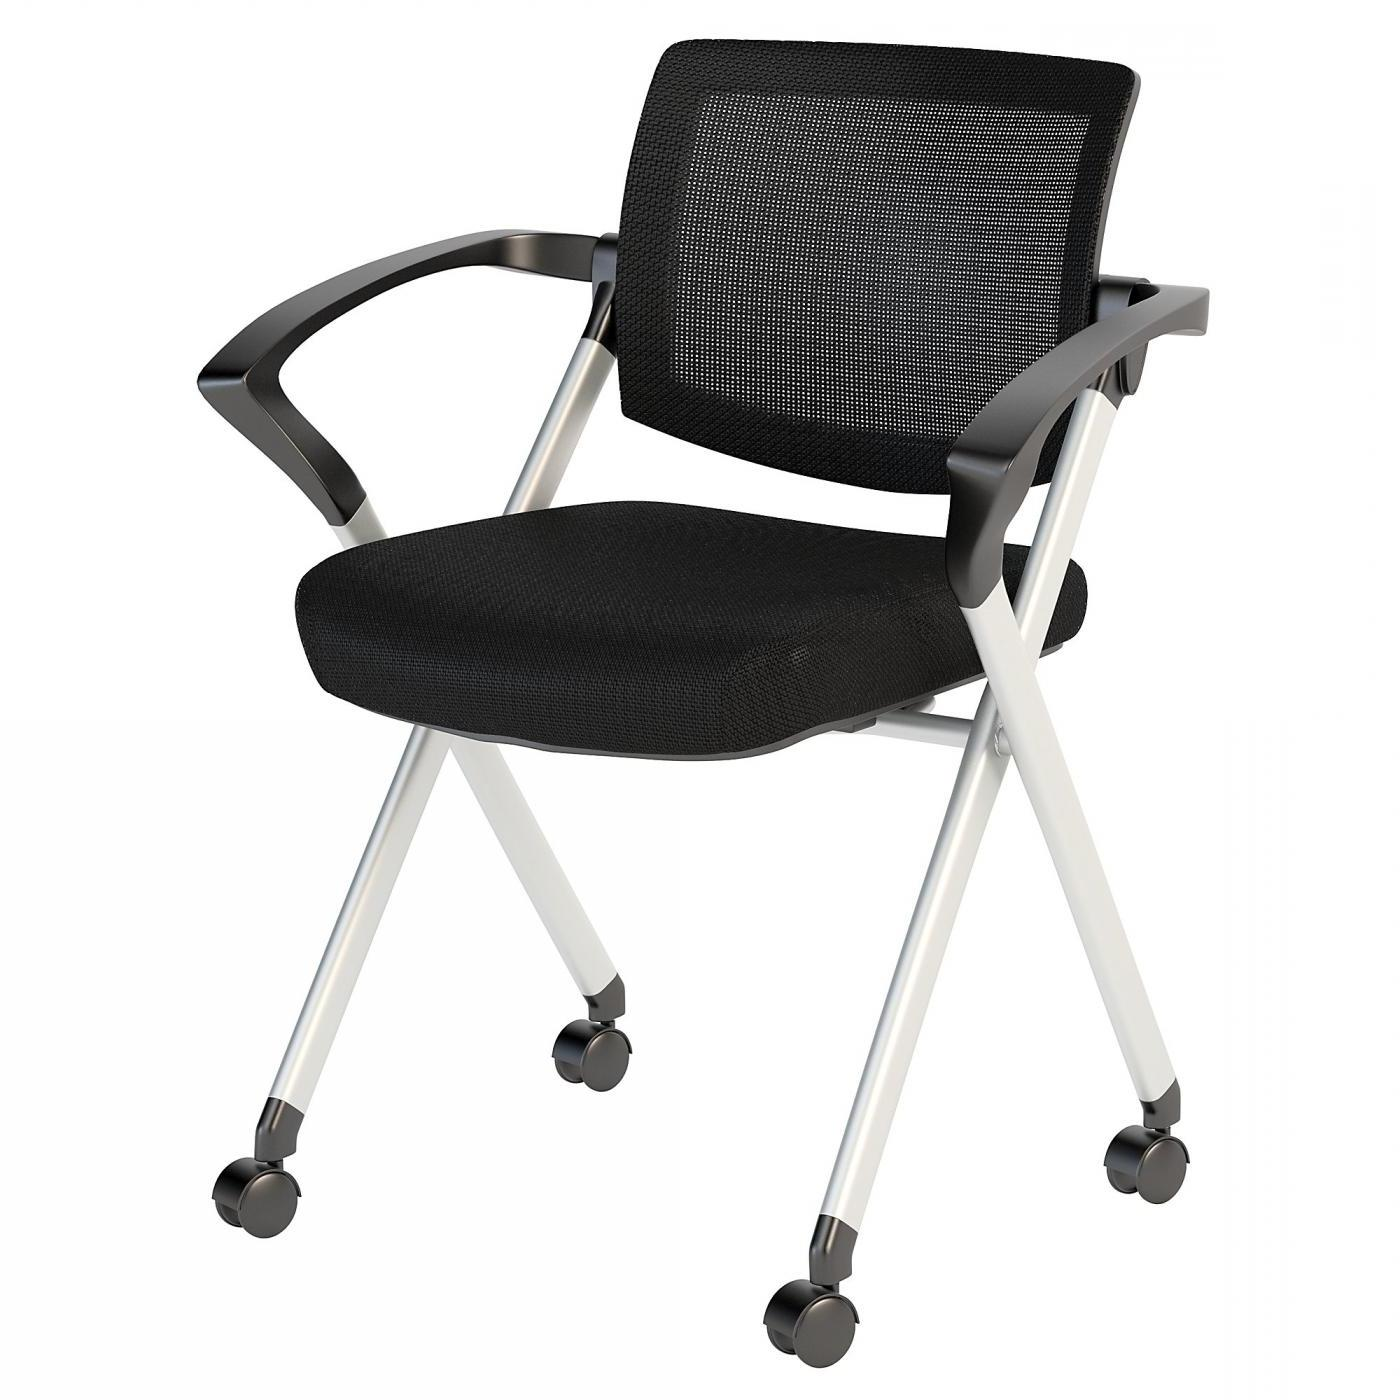 </b></font><b>BUSH BUSINESS FURNITURE CORPORATE MESH BACK FOLDING OFFICE CHAIRS SET OF 2. FREE SHIPPING</font>. </b></font></b>